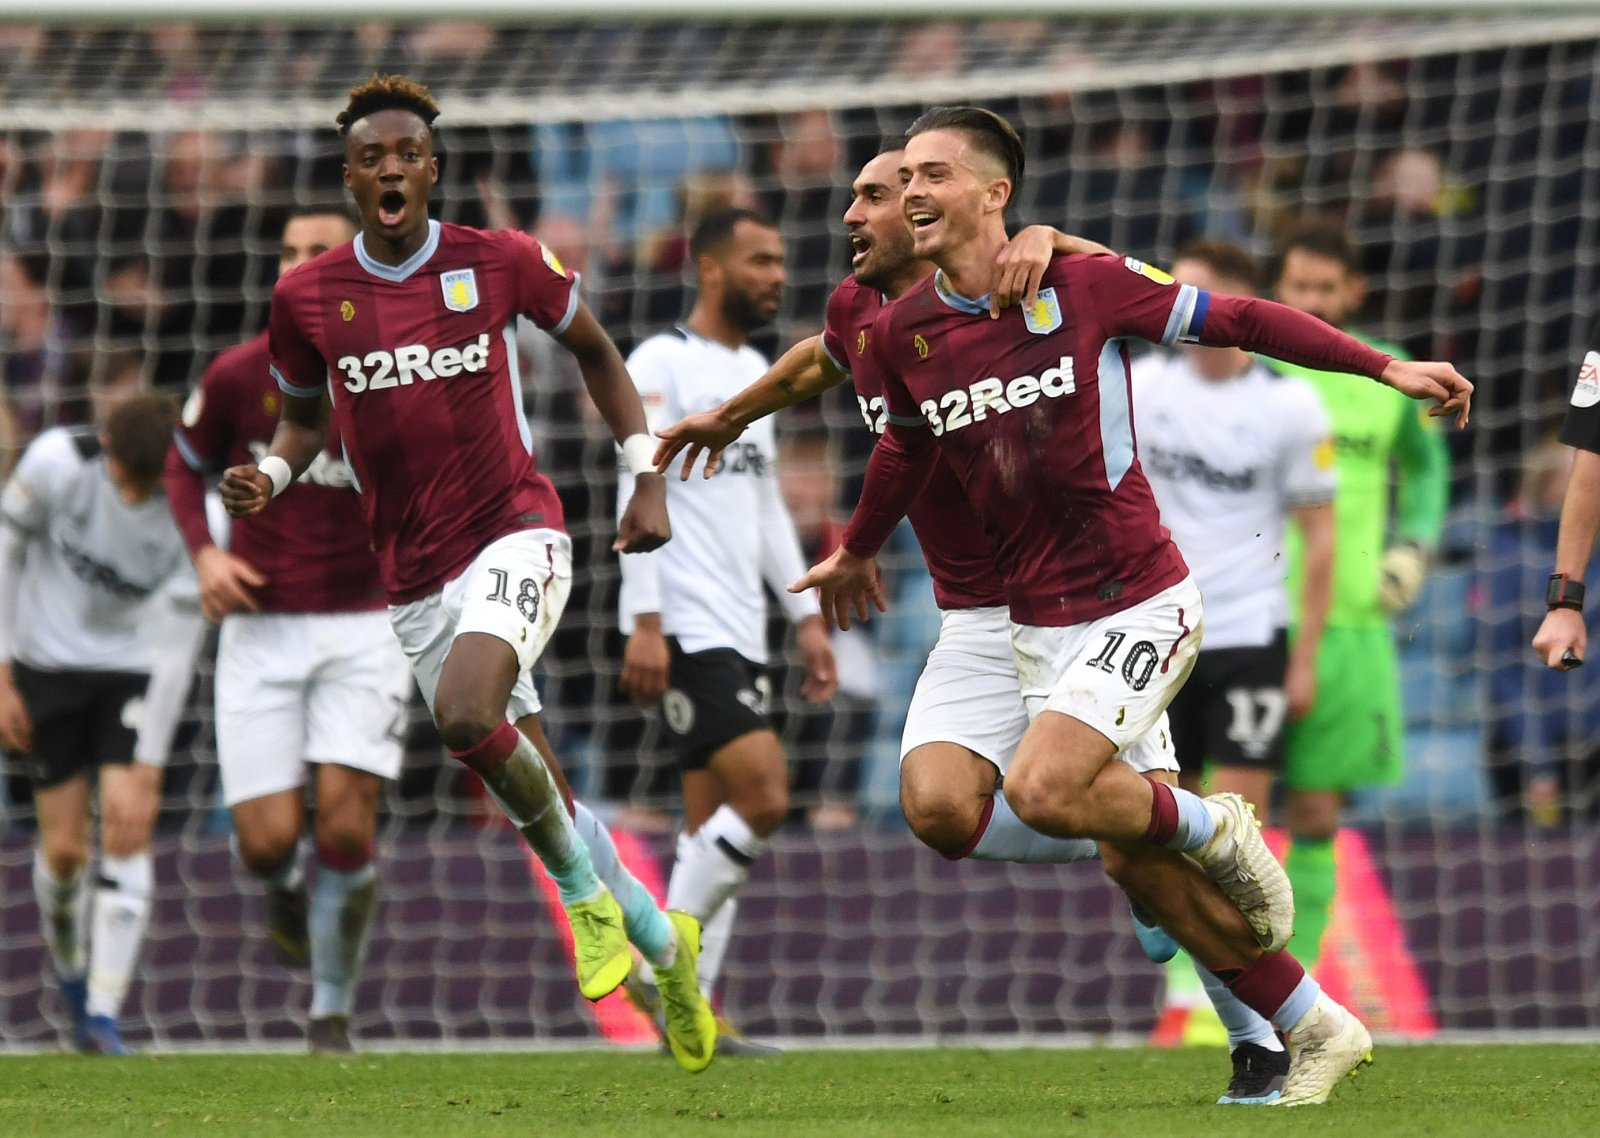 Opinion: Grealish cemented his place as Championship's best in latest Aston Villa win